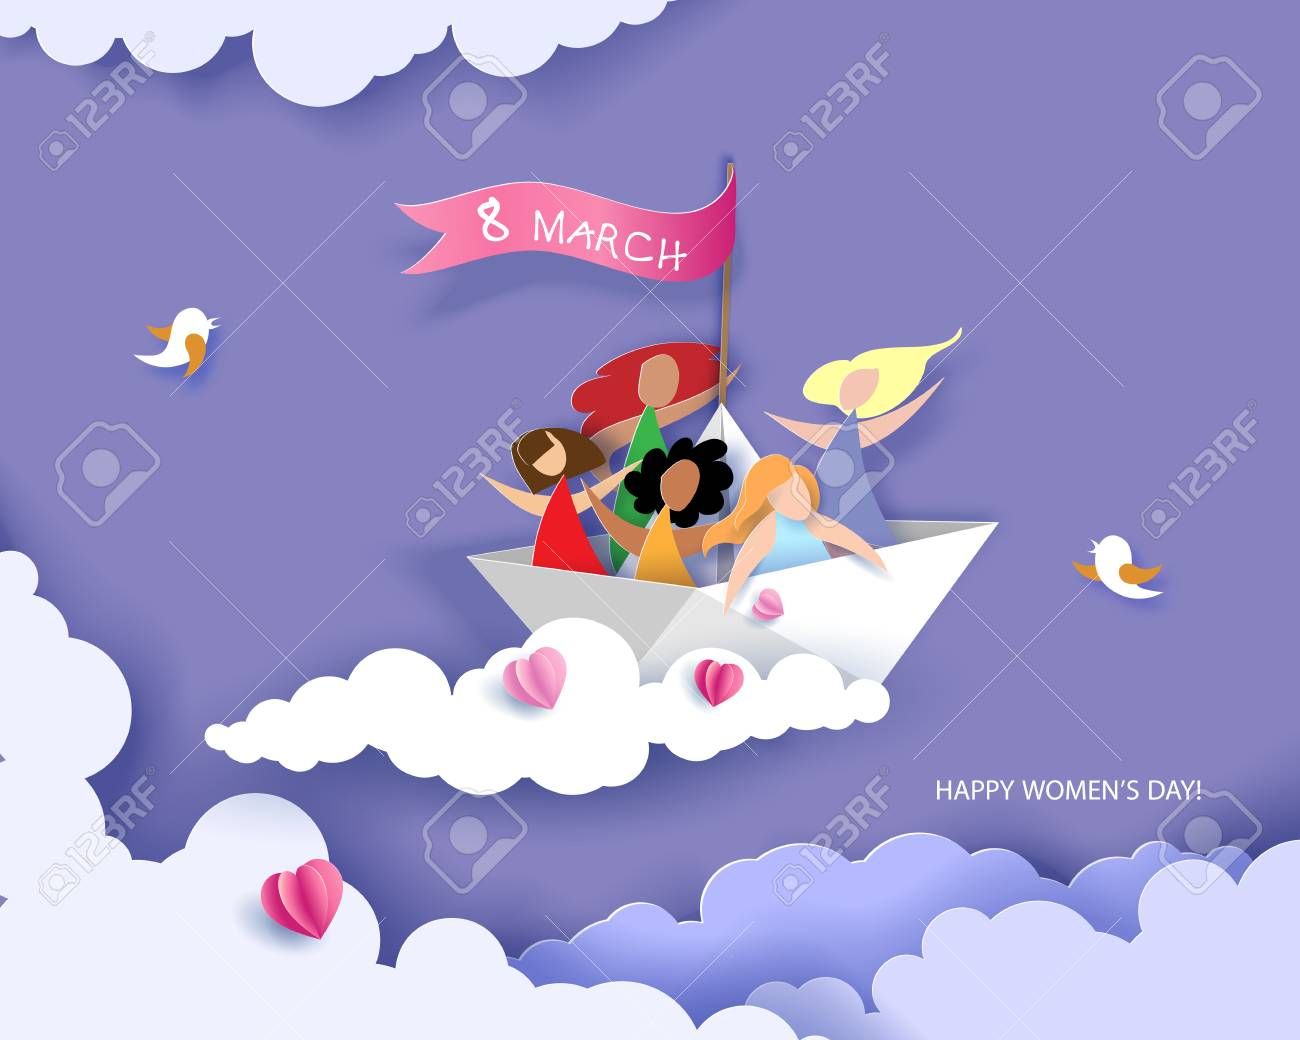 Card for 8 March womens day. Happy women different nationalities flying on paper boat. Vector illustration. Paper cut and craft style. - 96437422